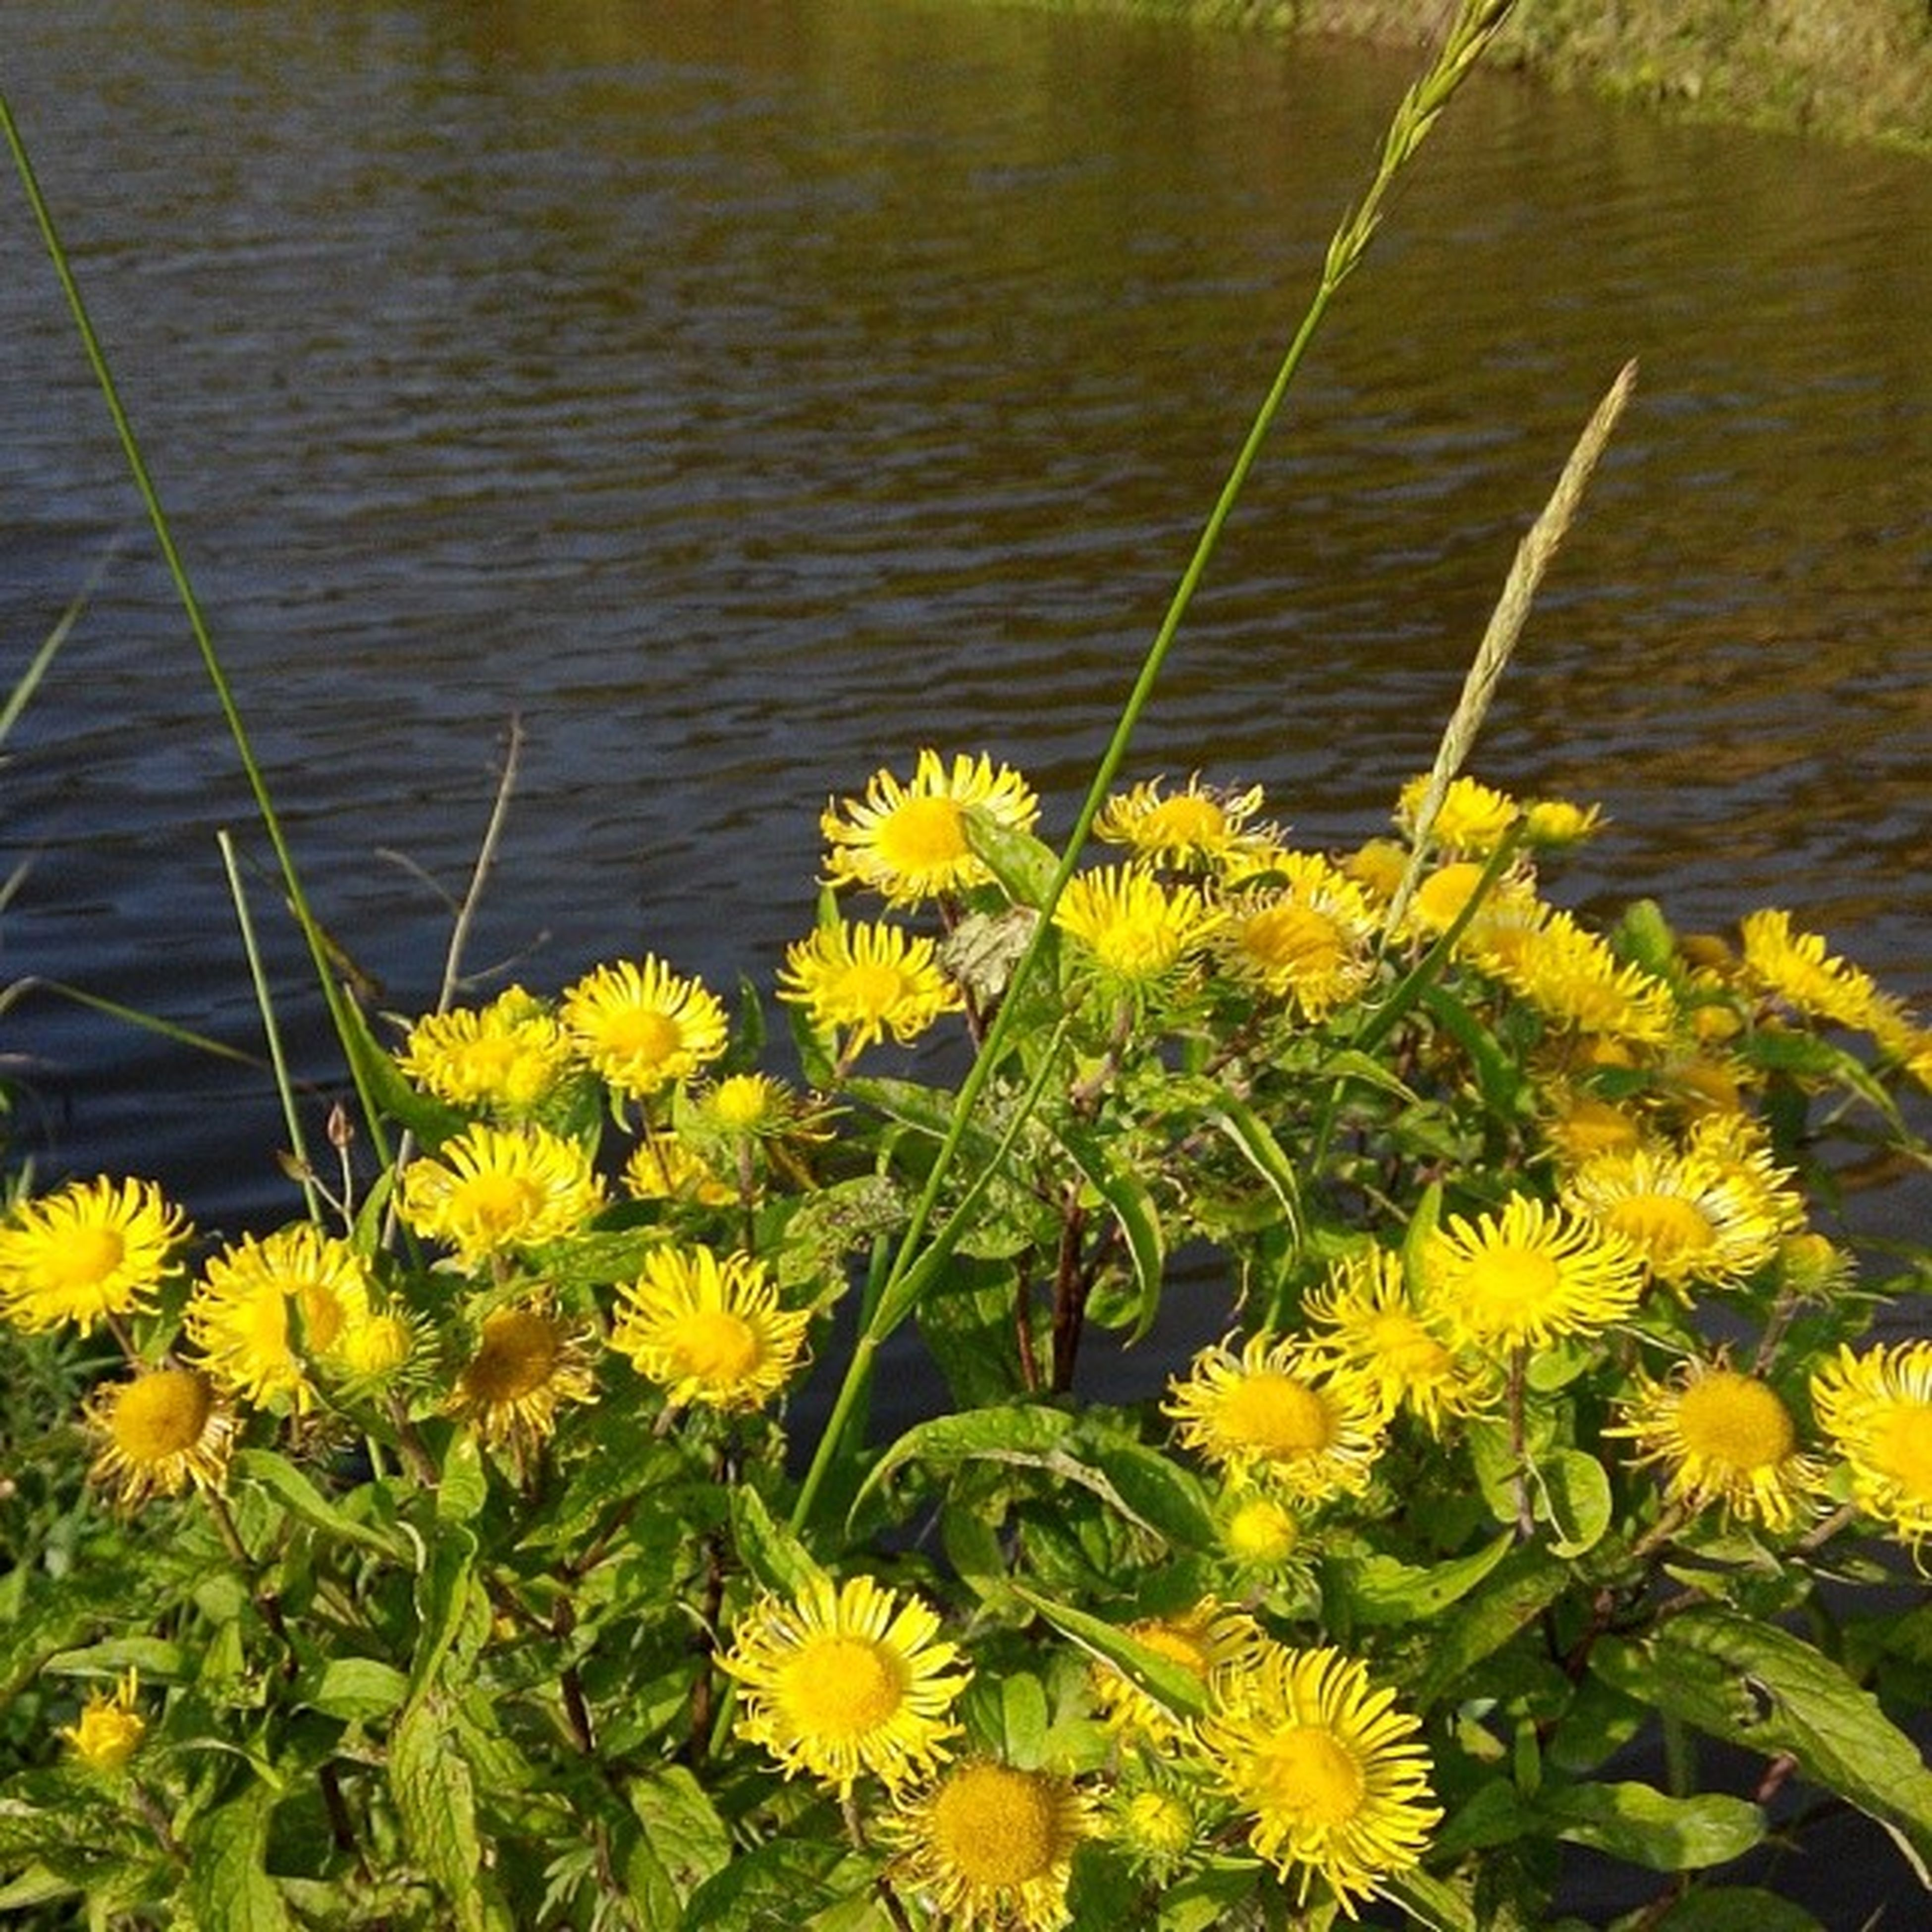 flower, yellow, freshness, growth, fragility, petal, beauty in nature, plant, flower head, nature, water, blooming, in bloom, daisy, stem, high angle view, lake, outdoors, day, green color